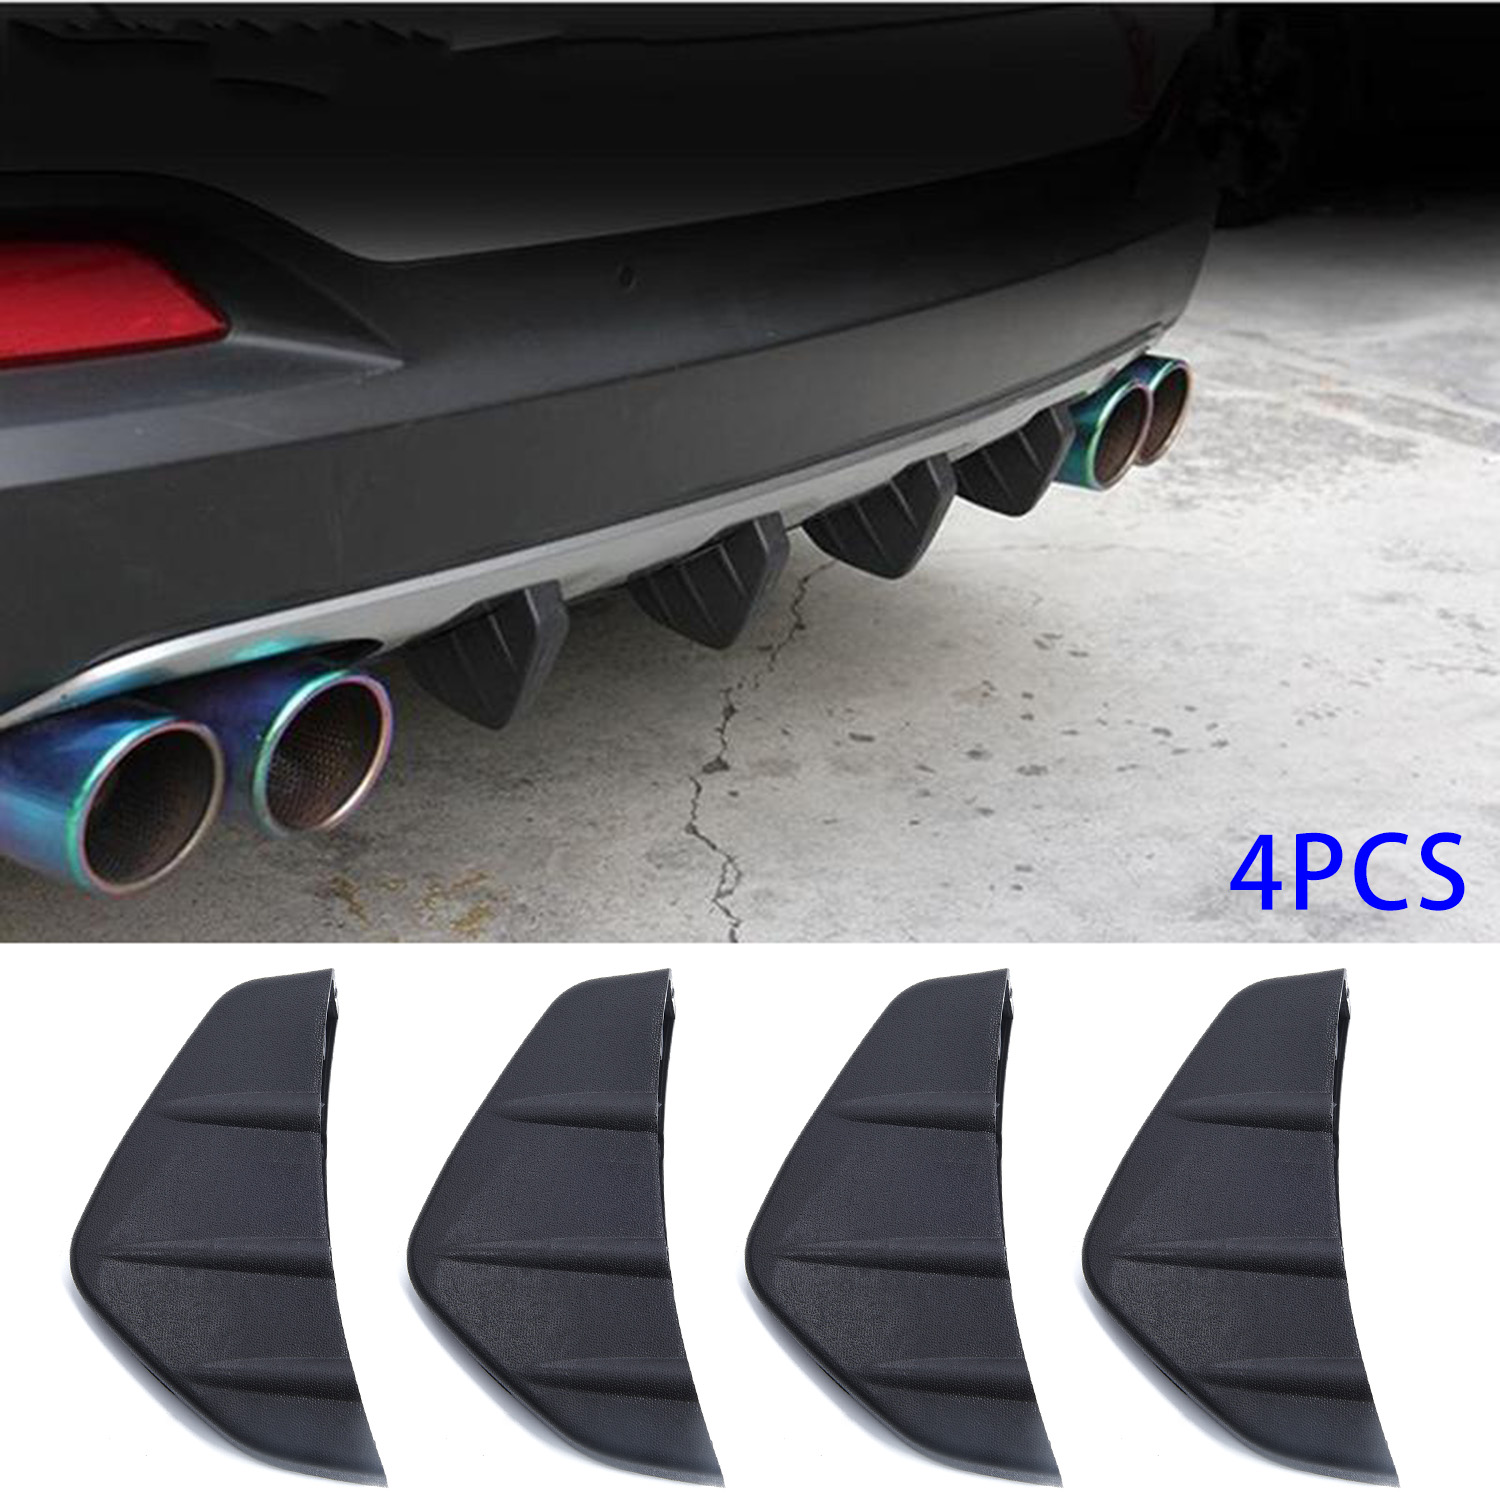 Image 4 - 4pcs Durable PVC Car Rear Bumper Diffuser Scratch Protector Cover Molding Trim Car Styling Decals Auto Accessories-in Bumpers from Automobiles & Motorcycles